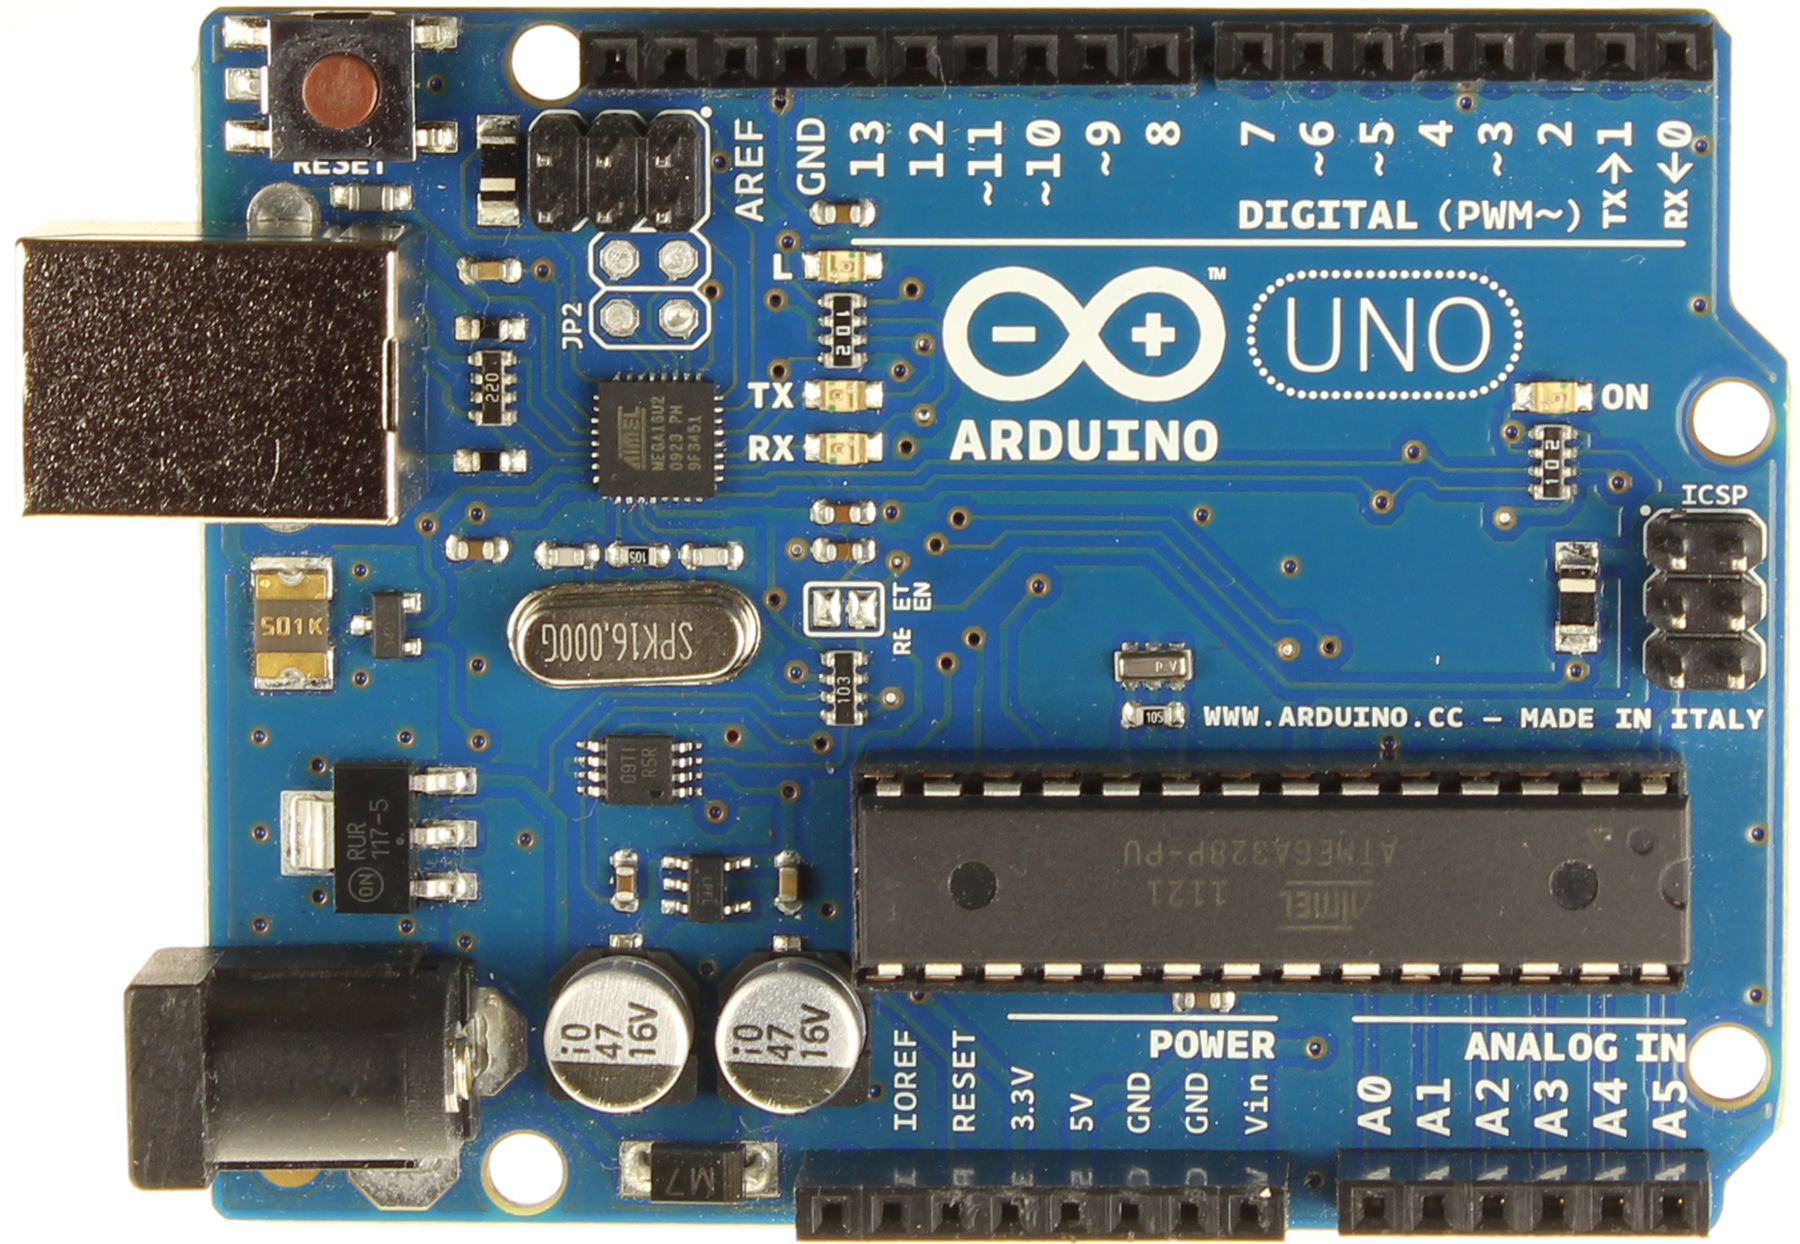 Need a custom casing for my project-48912-arduinouno_r3_front.jpg